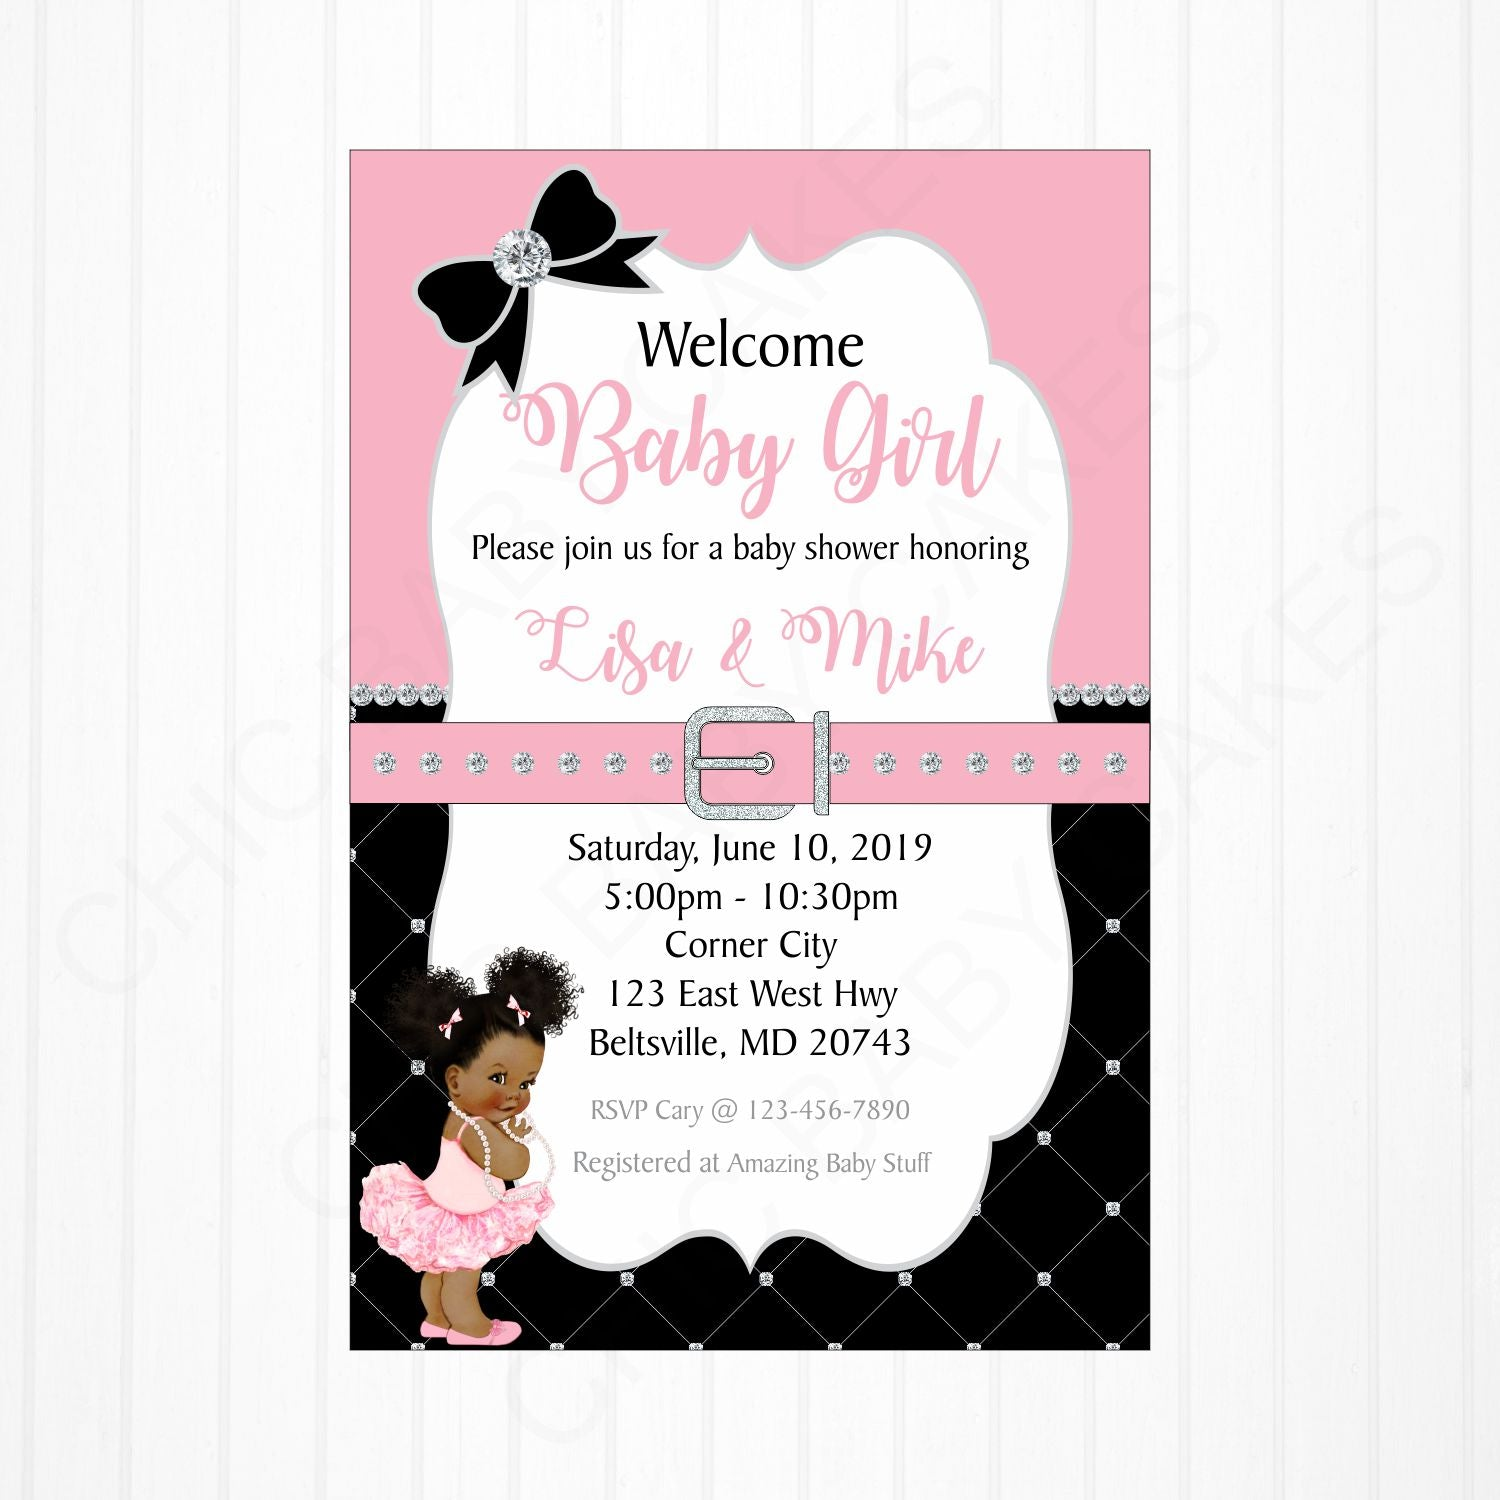 Girl Baby Shower Invitation - Pink, Black